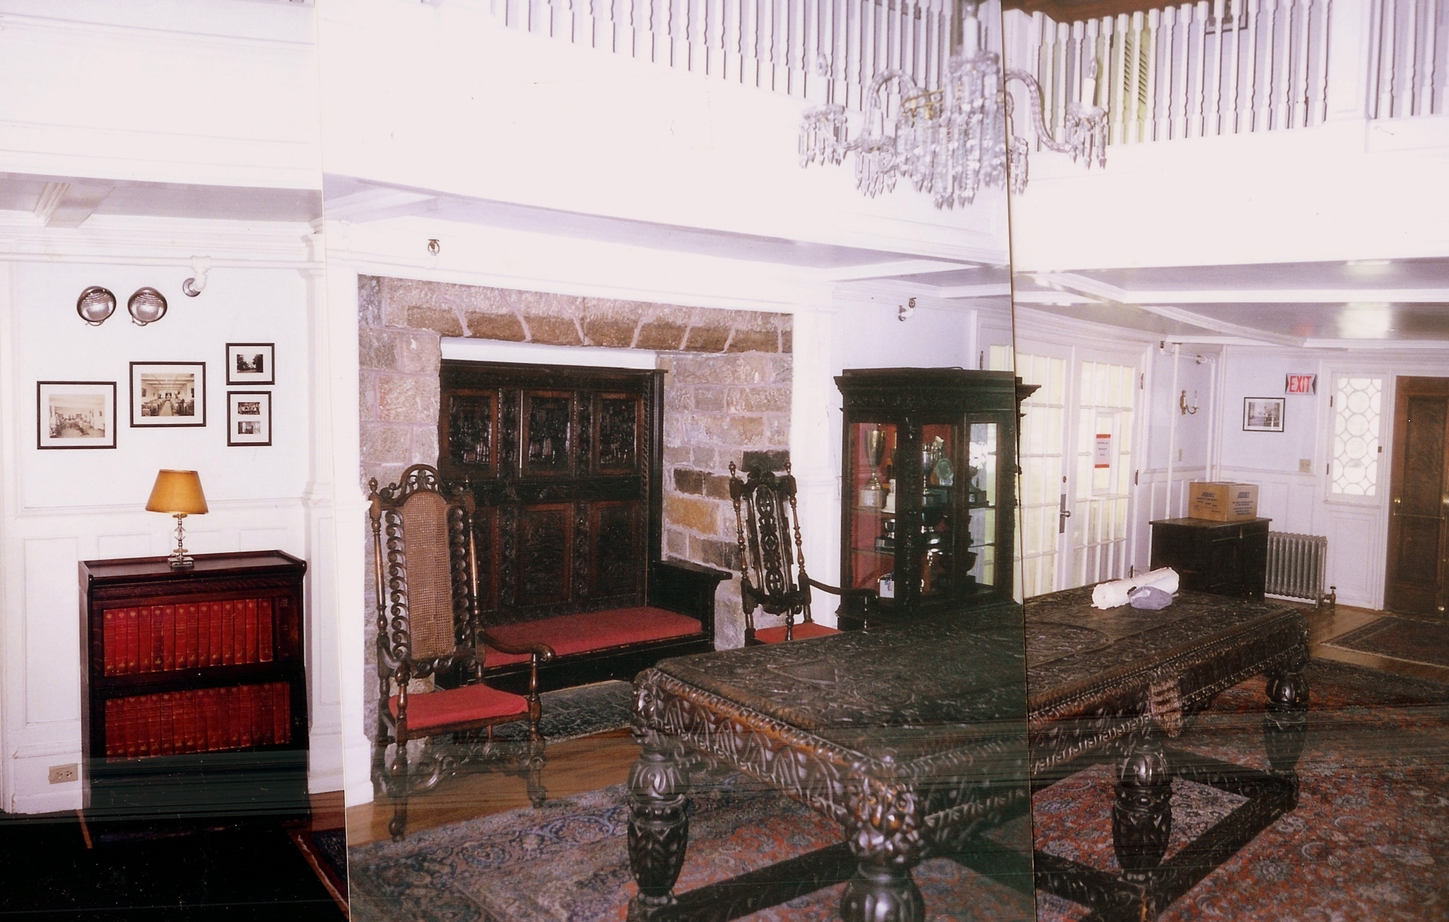 The entry hall before, opened up by Harrison. The room came to be occupied by outsized furniture, including a bench inside the fireplace, that detracted from a residential atmosphere.